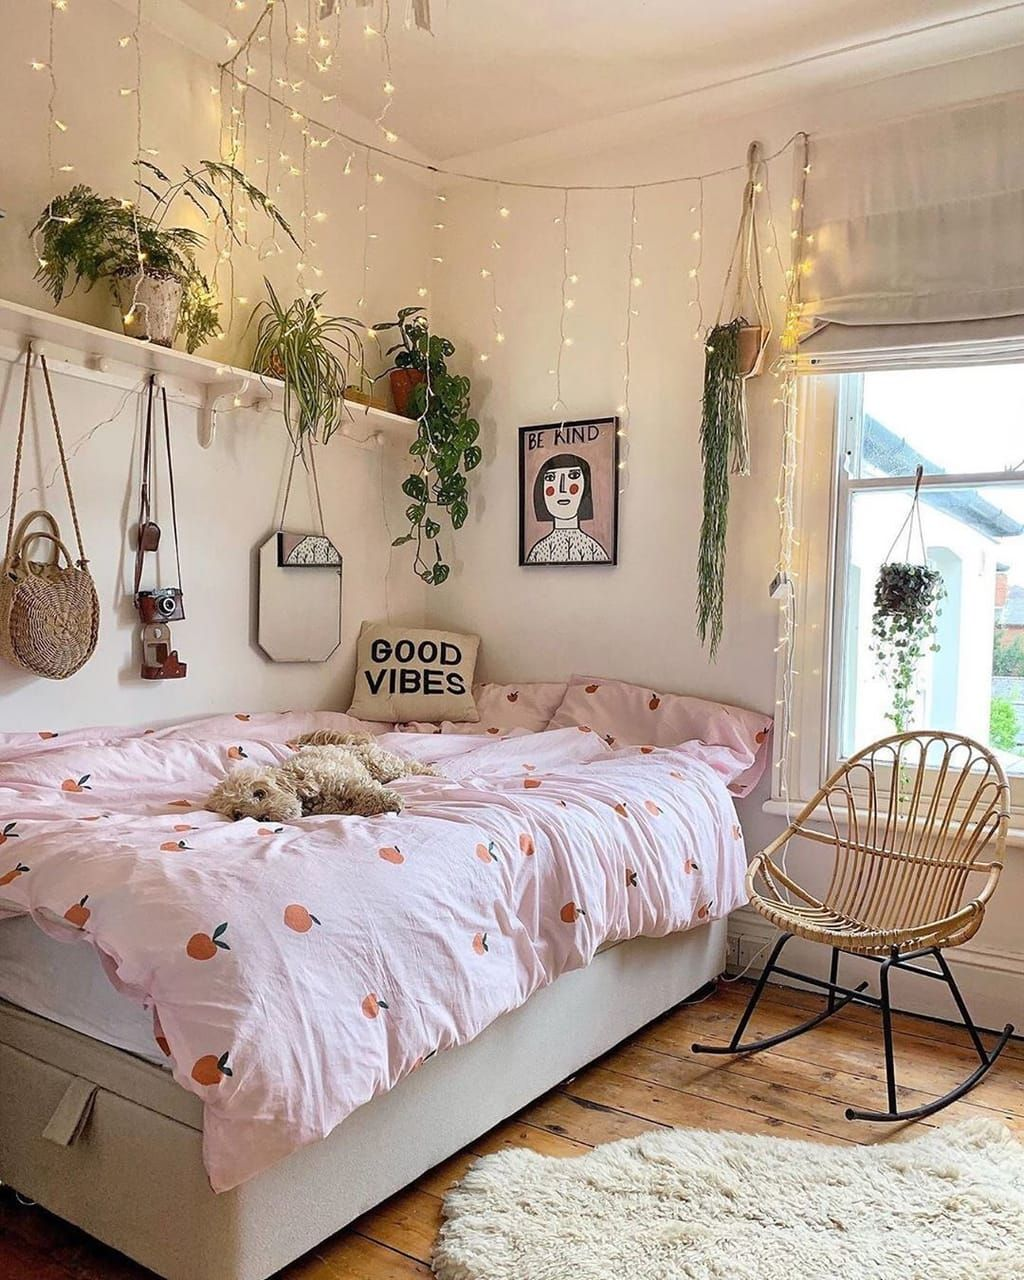 These Plant-Filled Spaces Are So Dreamy on We Hear